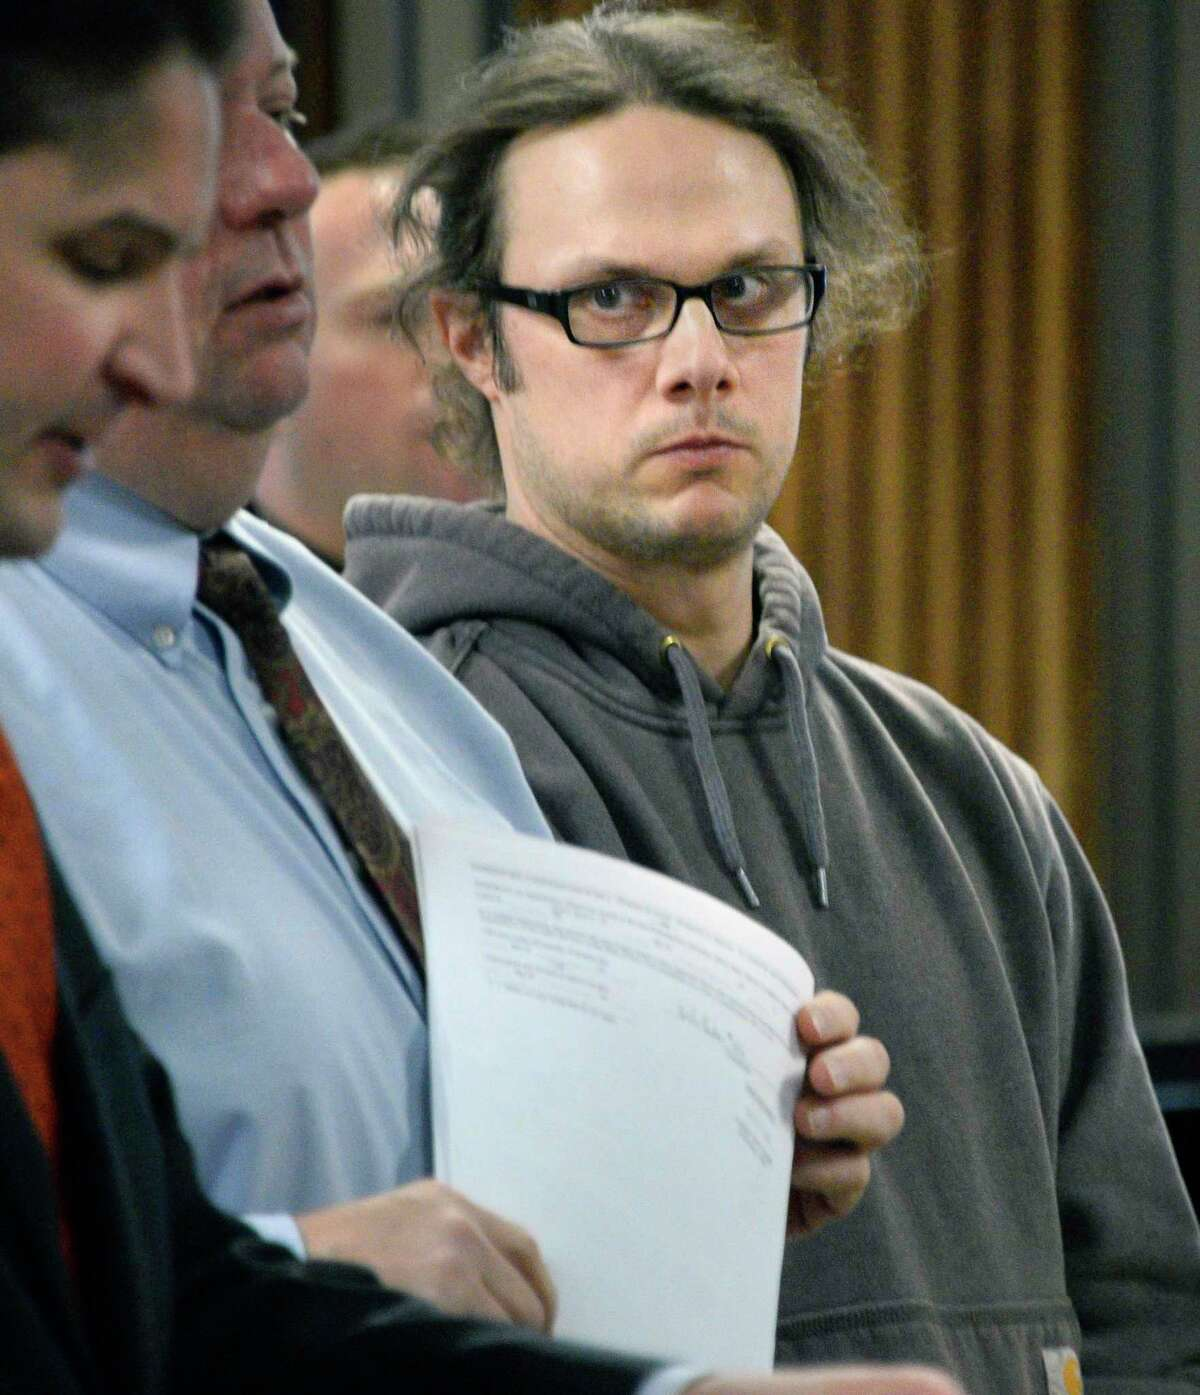 Town of Bolton's chief operator of its water department Thomas French II, is arraigned in Albany City Court on charges related to falsification of water-quality reports Tuesday April 17, 2018 in Albany, NY. (John Carl D'Annibale/Times Union)